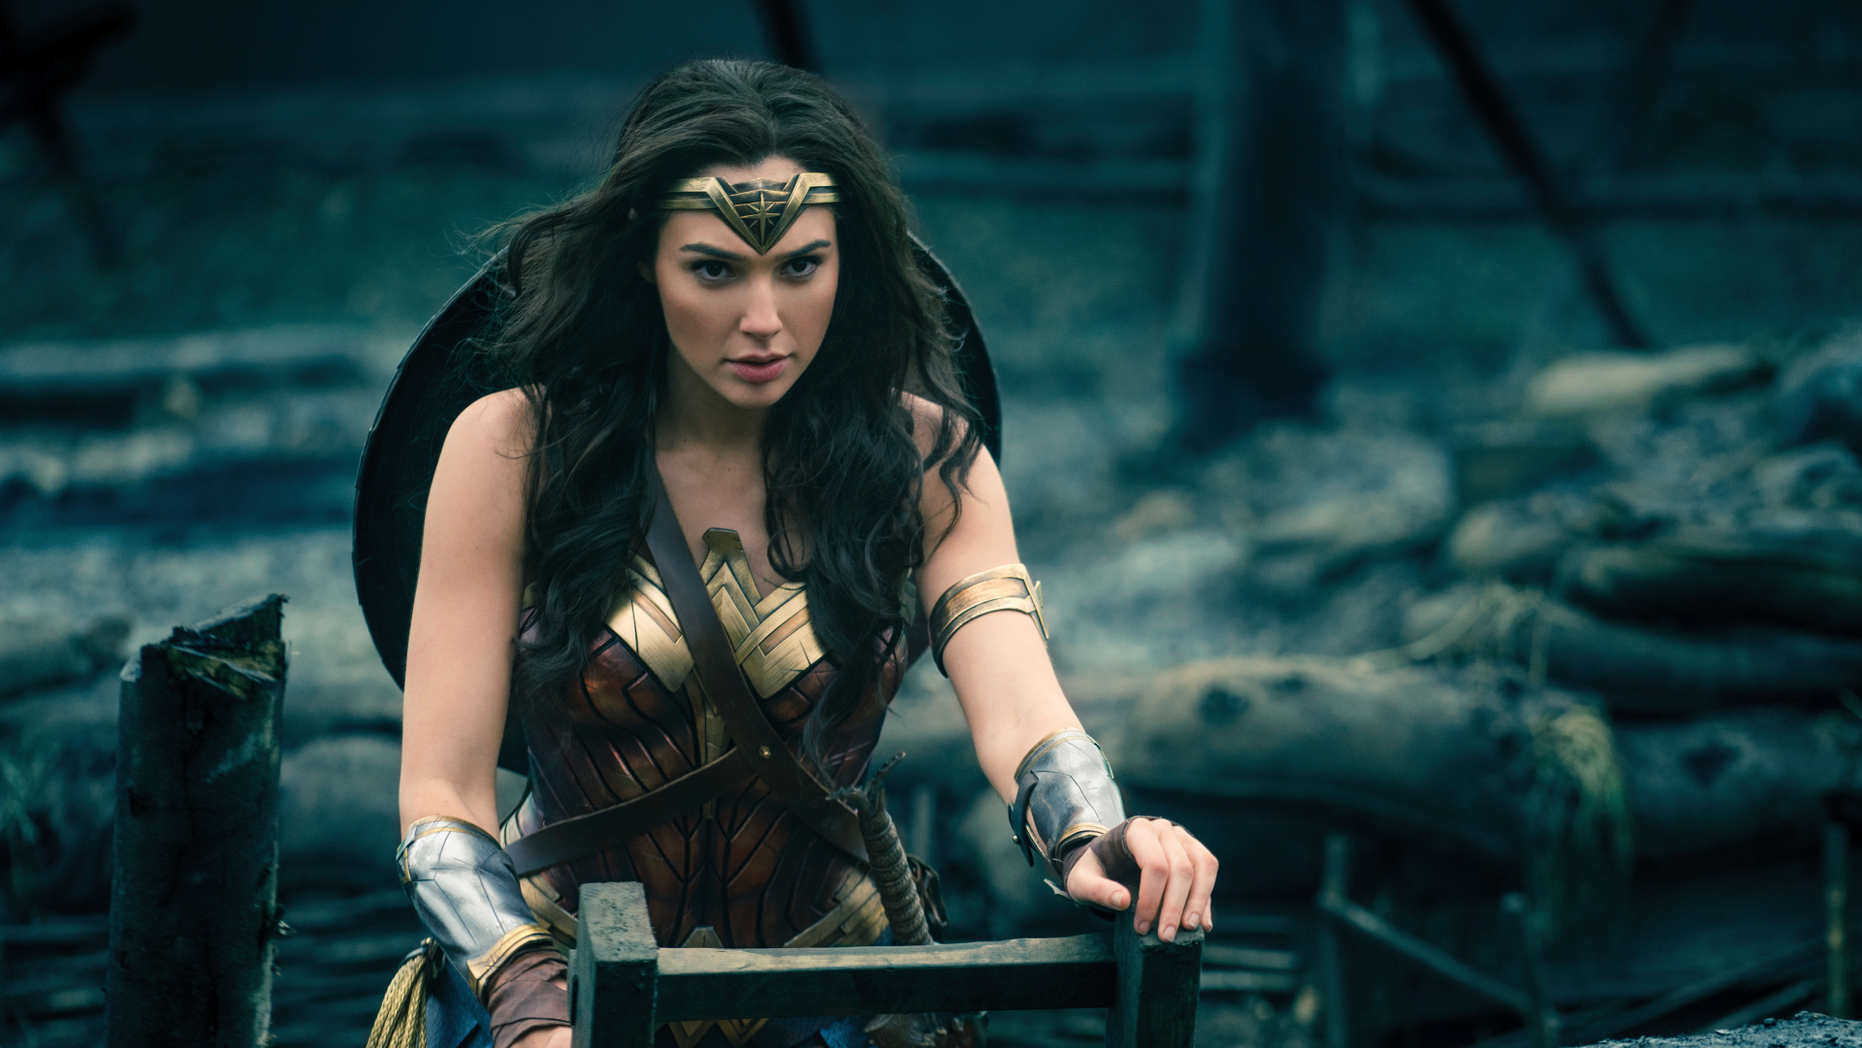 Wonder Woman 1984 Hit With 7-Month Delay, Now Targeting Summer 2020